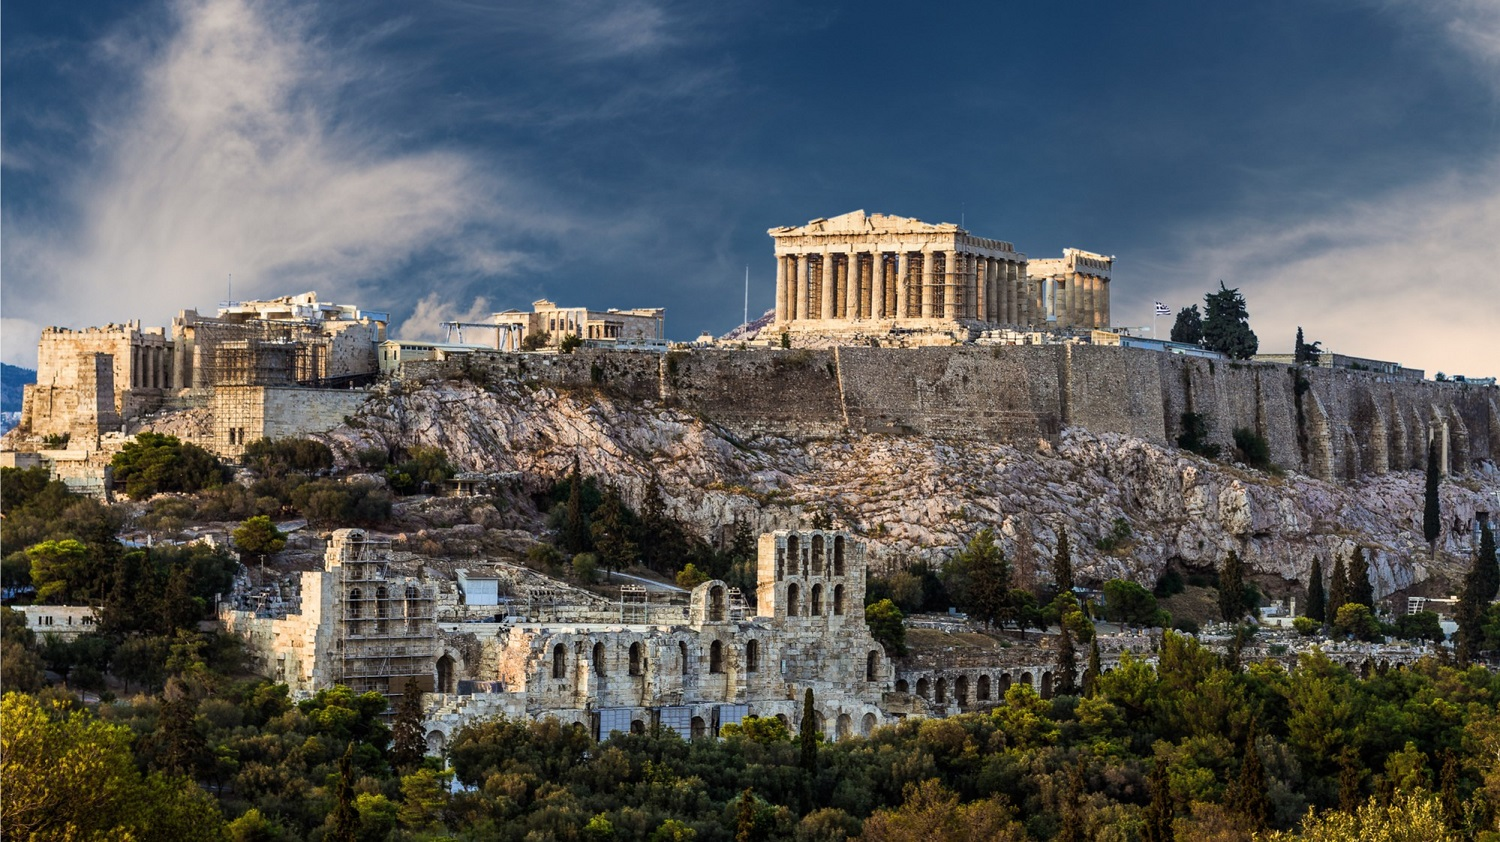 Acropolis - Things To Do In Athens